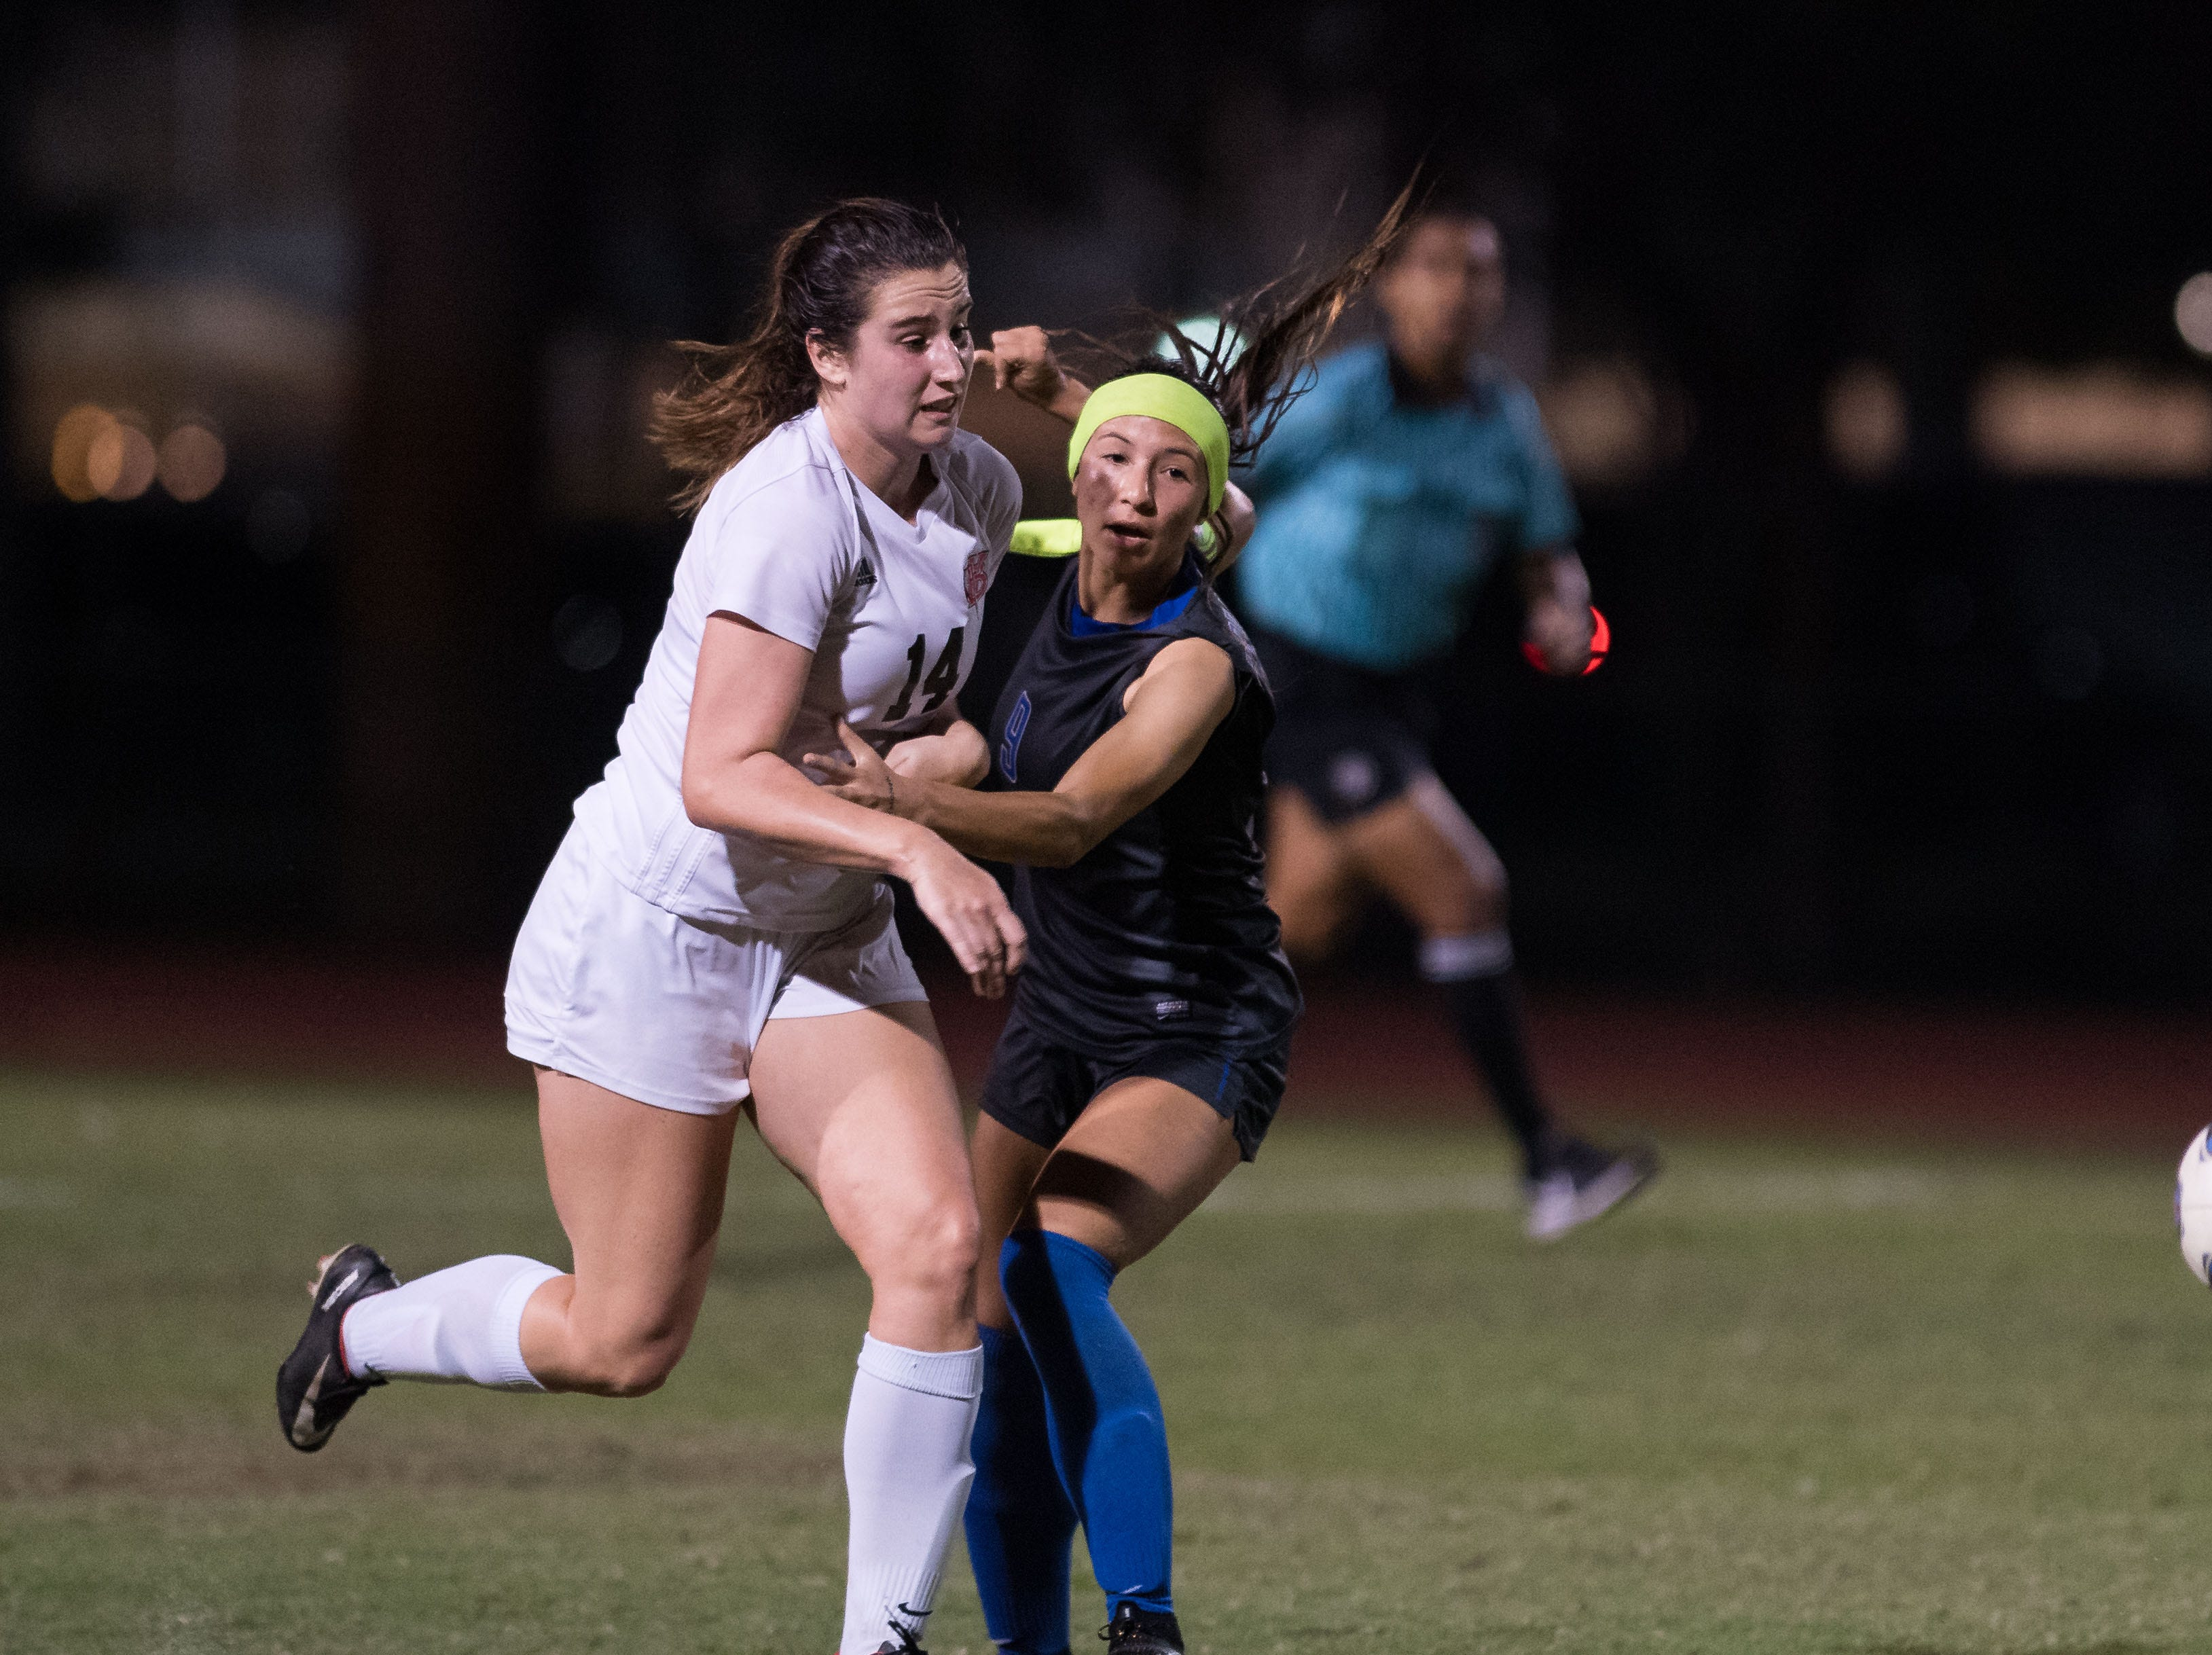 Vero Beach plays Cypress Bay during the high school girls soccer Class 5A state semifinal game Friday, Feb. 15, 2019, at Cypress Bay High School in Weston.